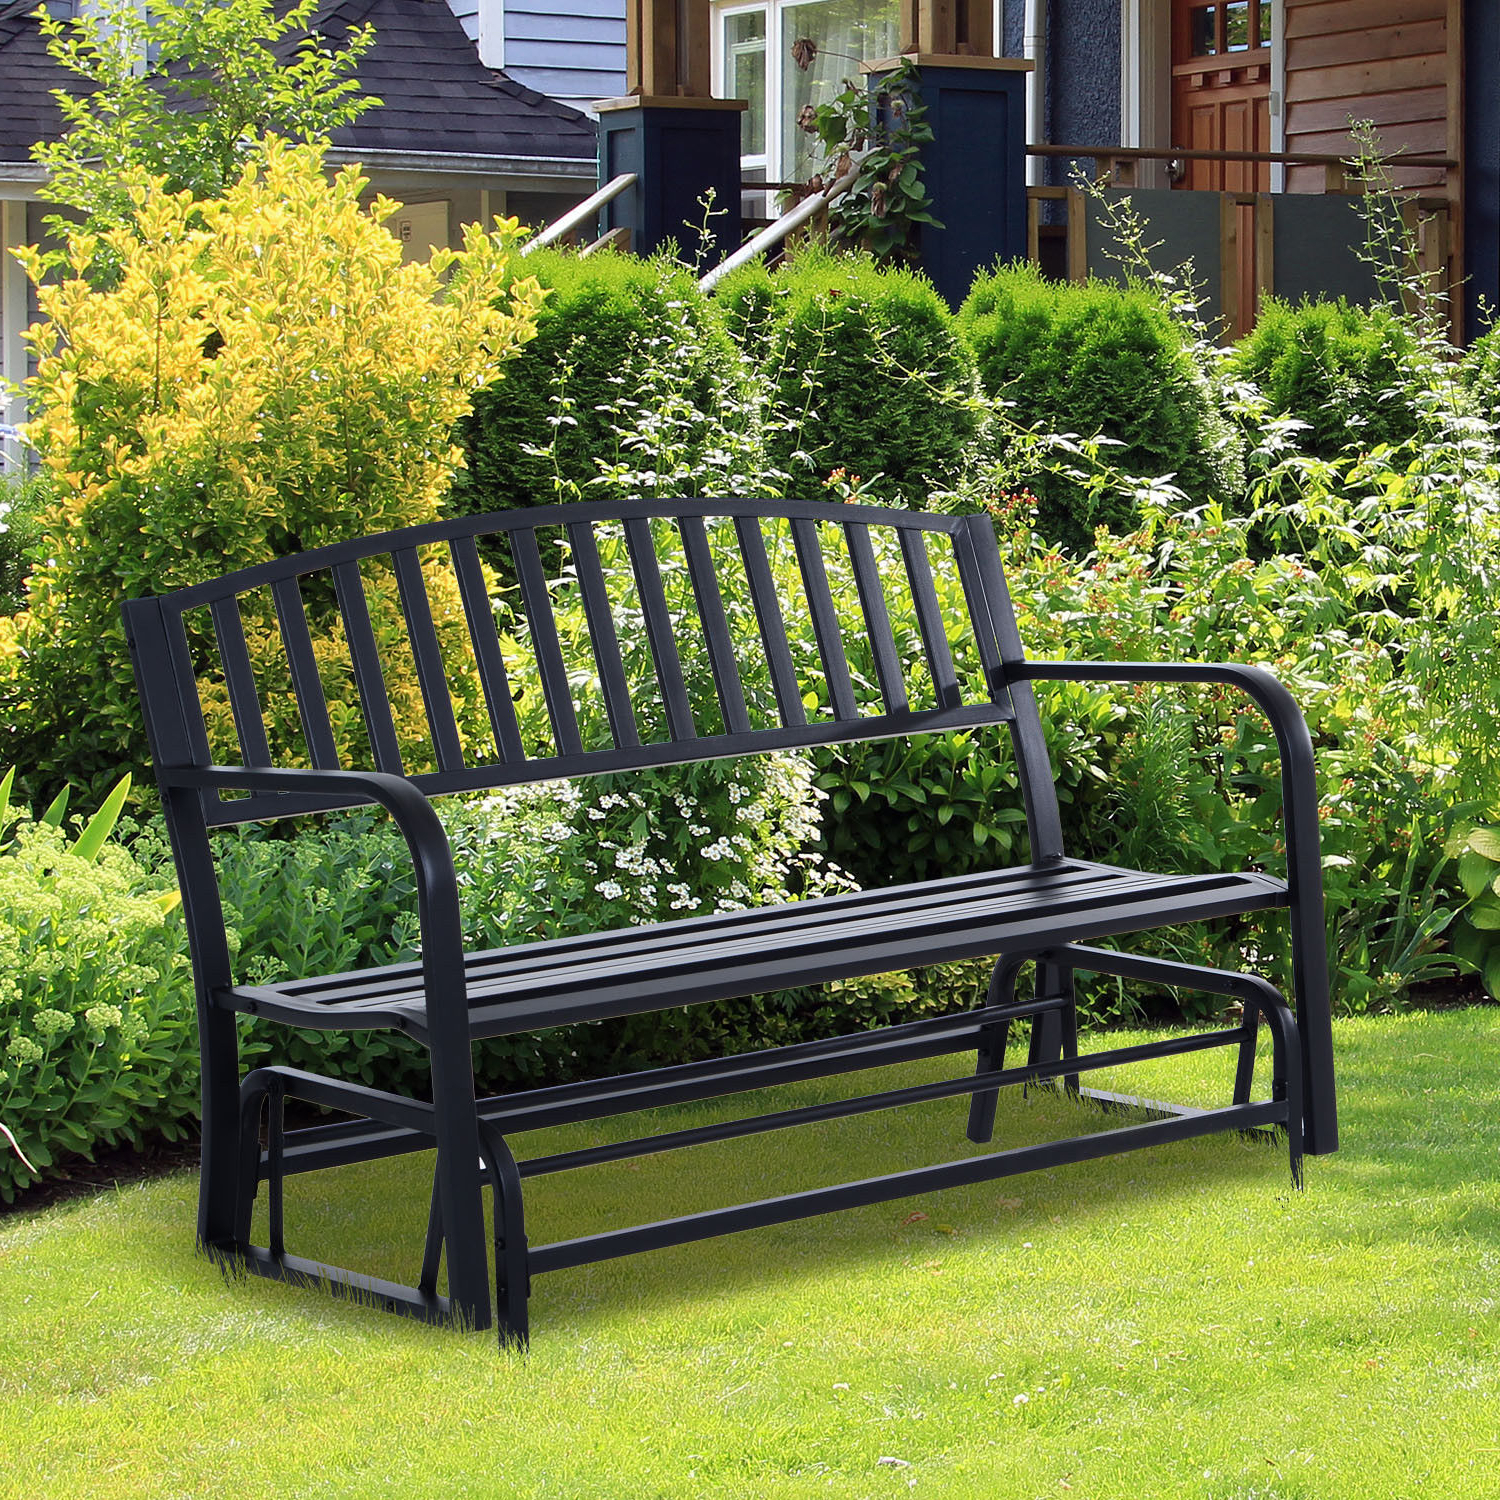 Current Details About Patio Garden Glider 2 Person Outdoor Porch Bench Rocking  Chair Yard Furniture With Regard To Outdoor Patio Swing Glider Bench Chair S (View 3 of 25)